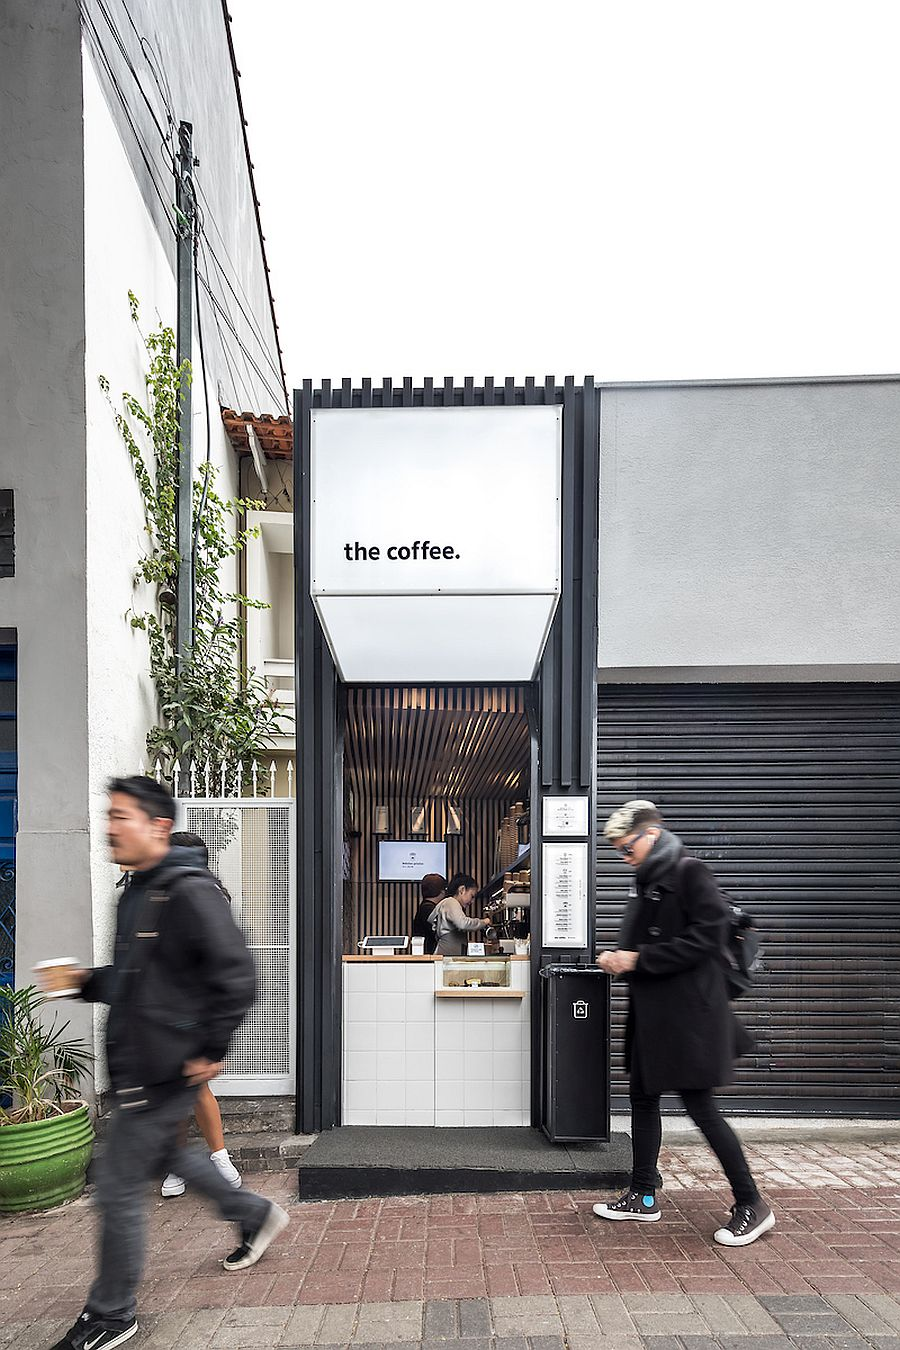 White coffee shop exterior with black thrown into the mix